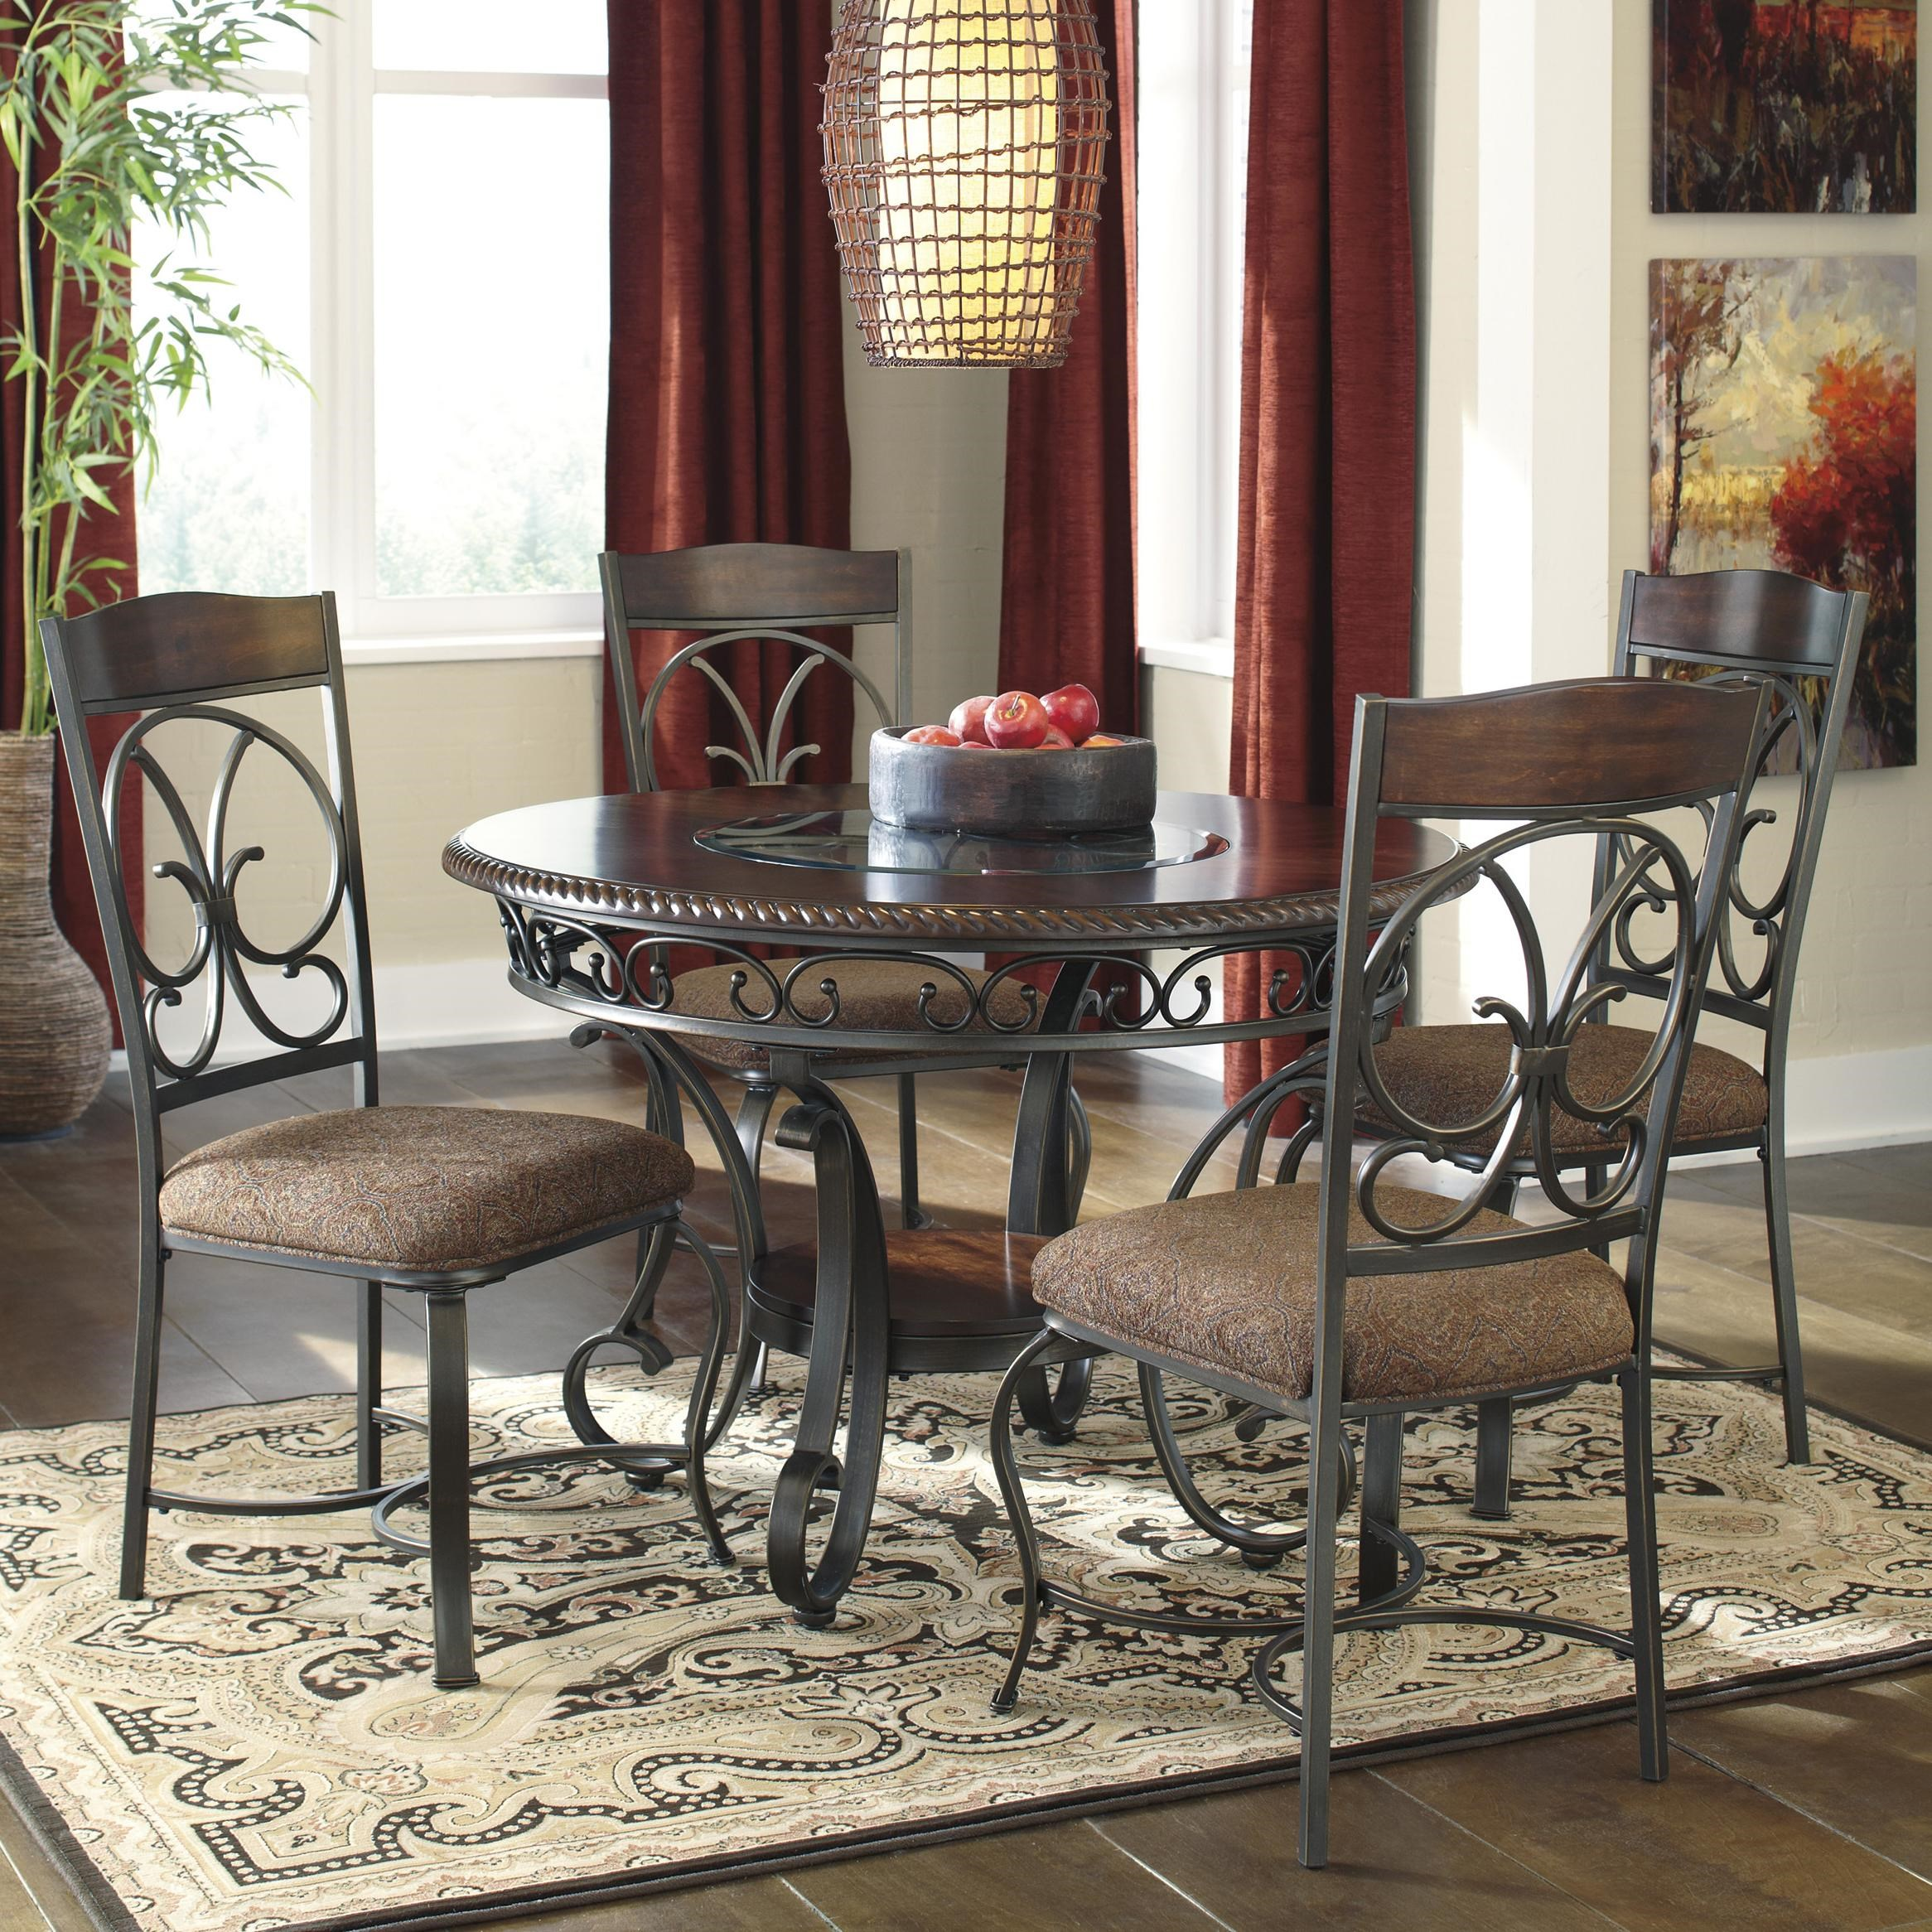 Signature Design by Ashley Glambrey Round Dining Table and Chair Set : Royal Furniture : Dining ...